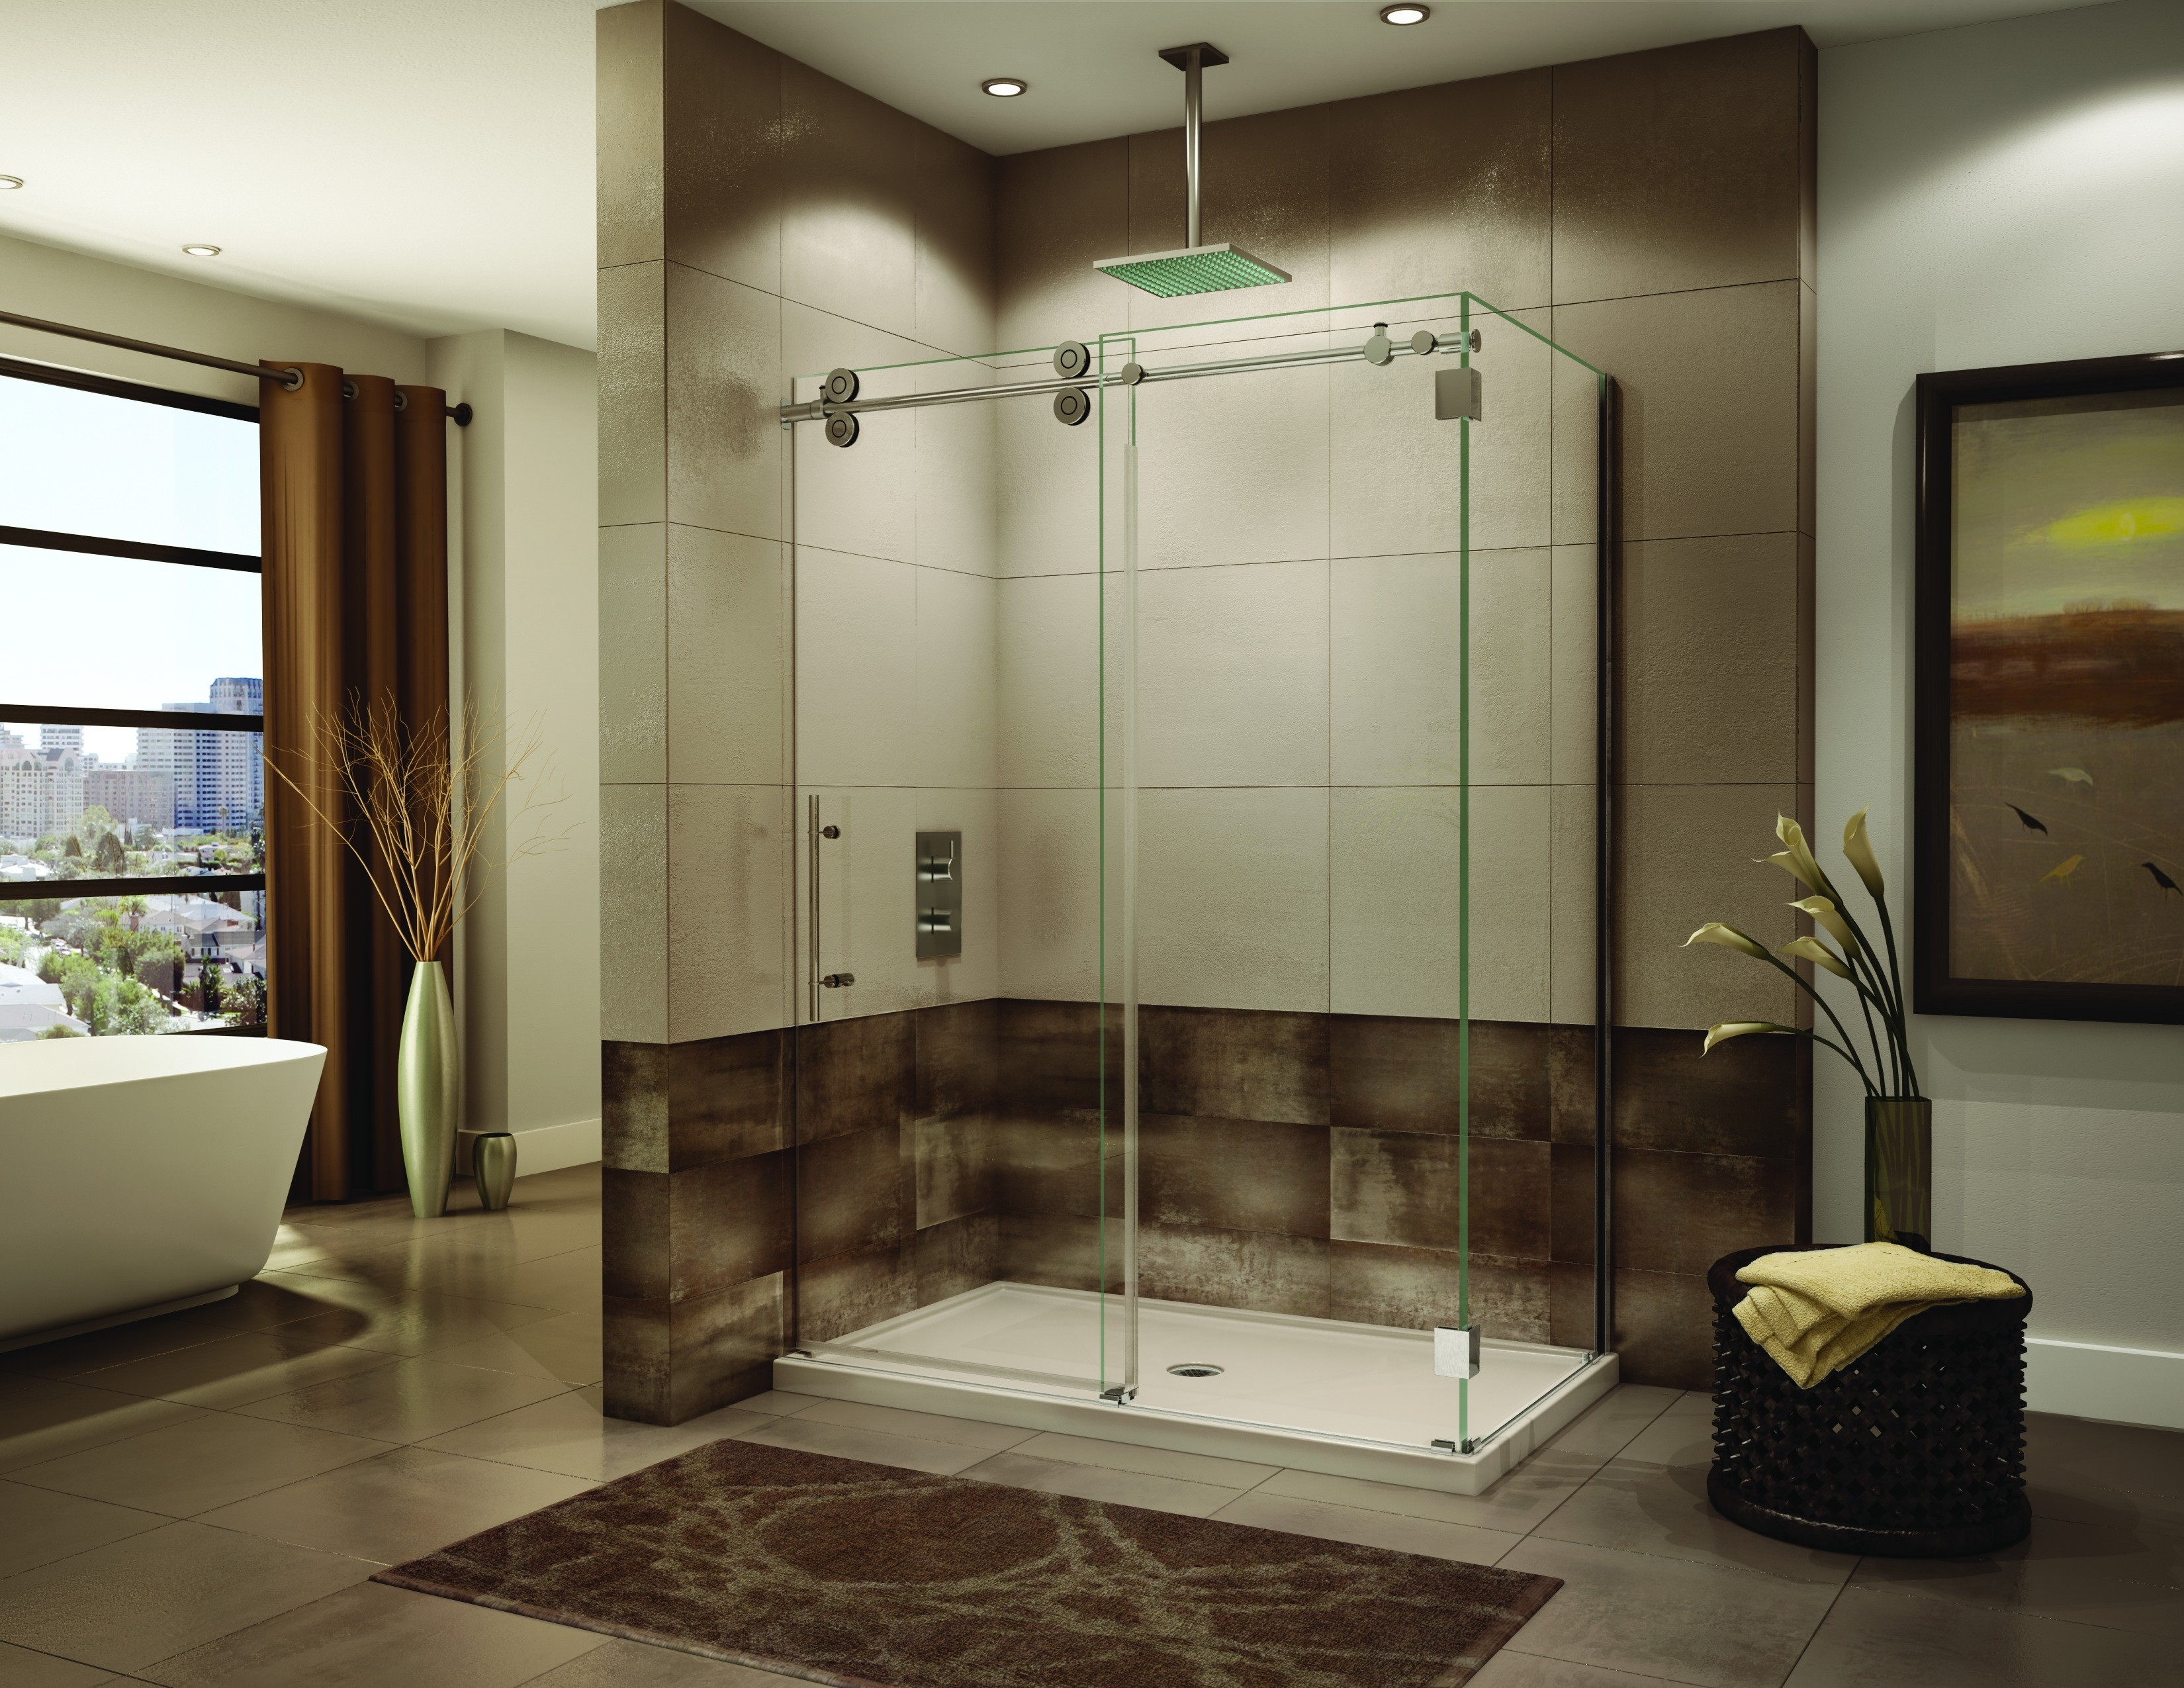 Raleigh bathroom remodeling featuring frameless serenity for Bathroom remodel raleigh